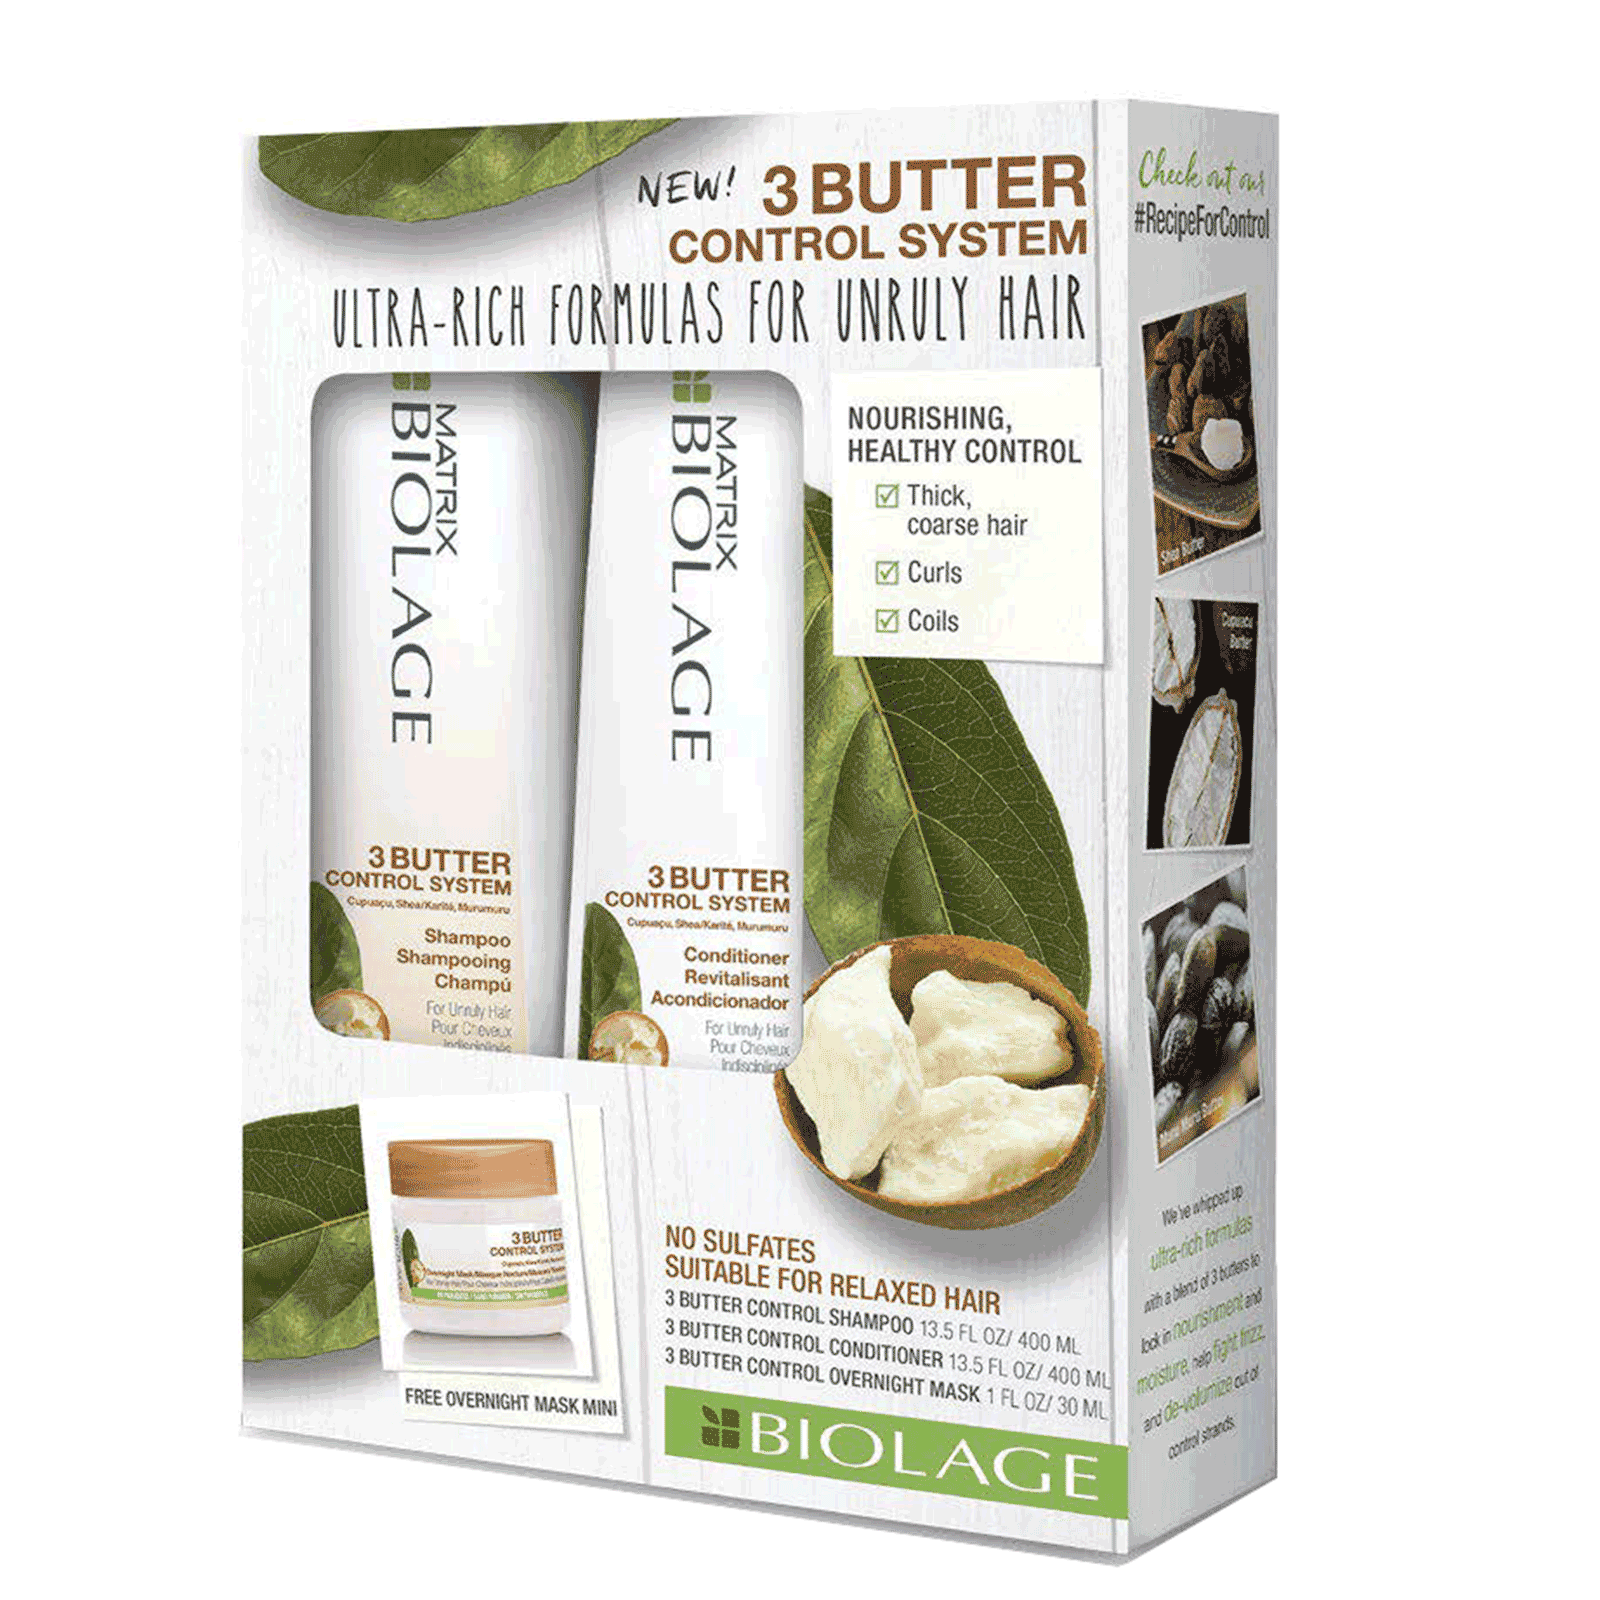 Biolage - 3Butter Control System Shampoo & Conditioner+Mask